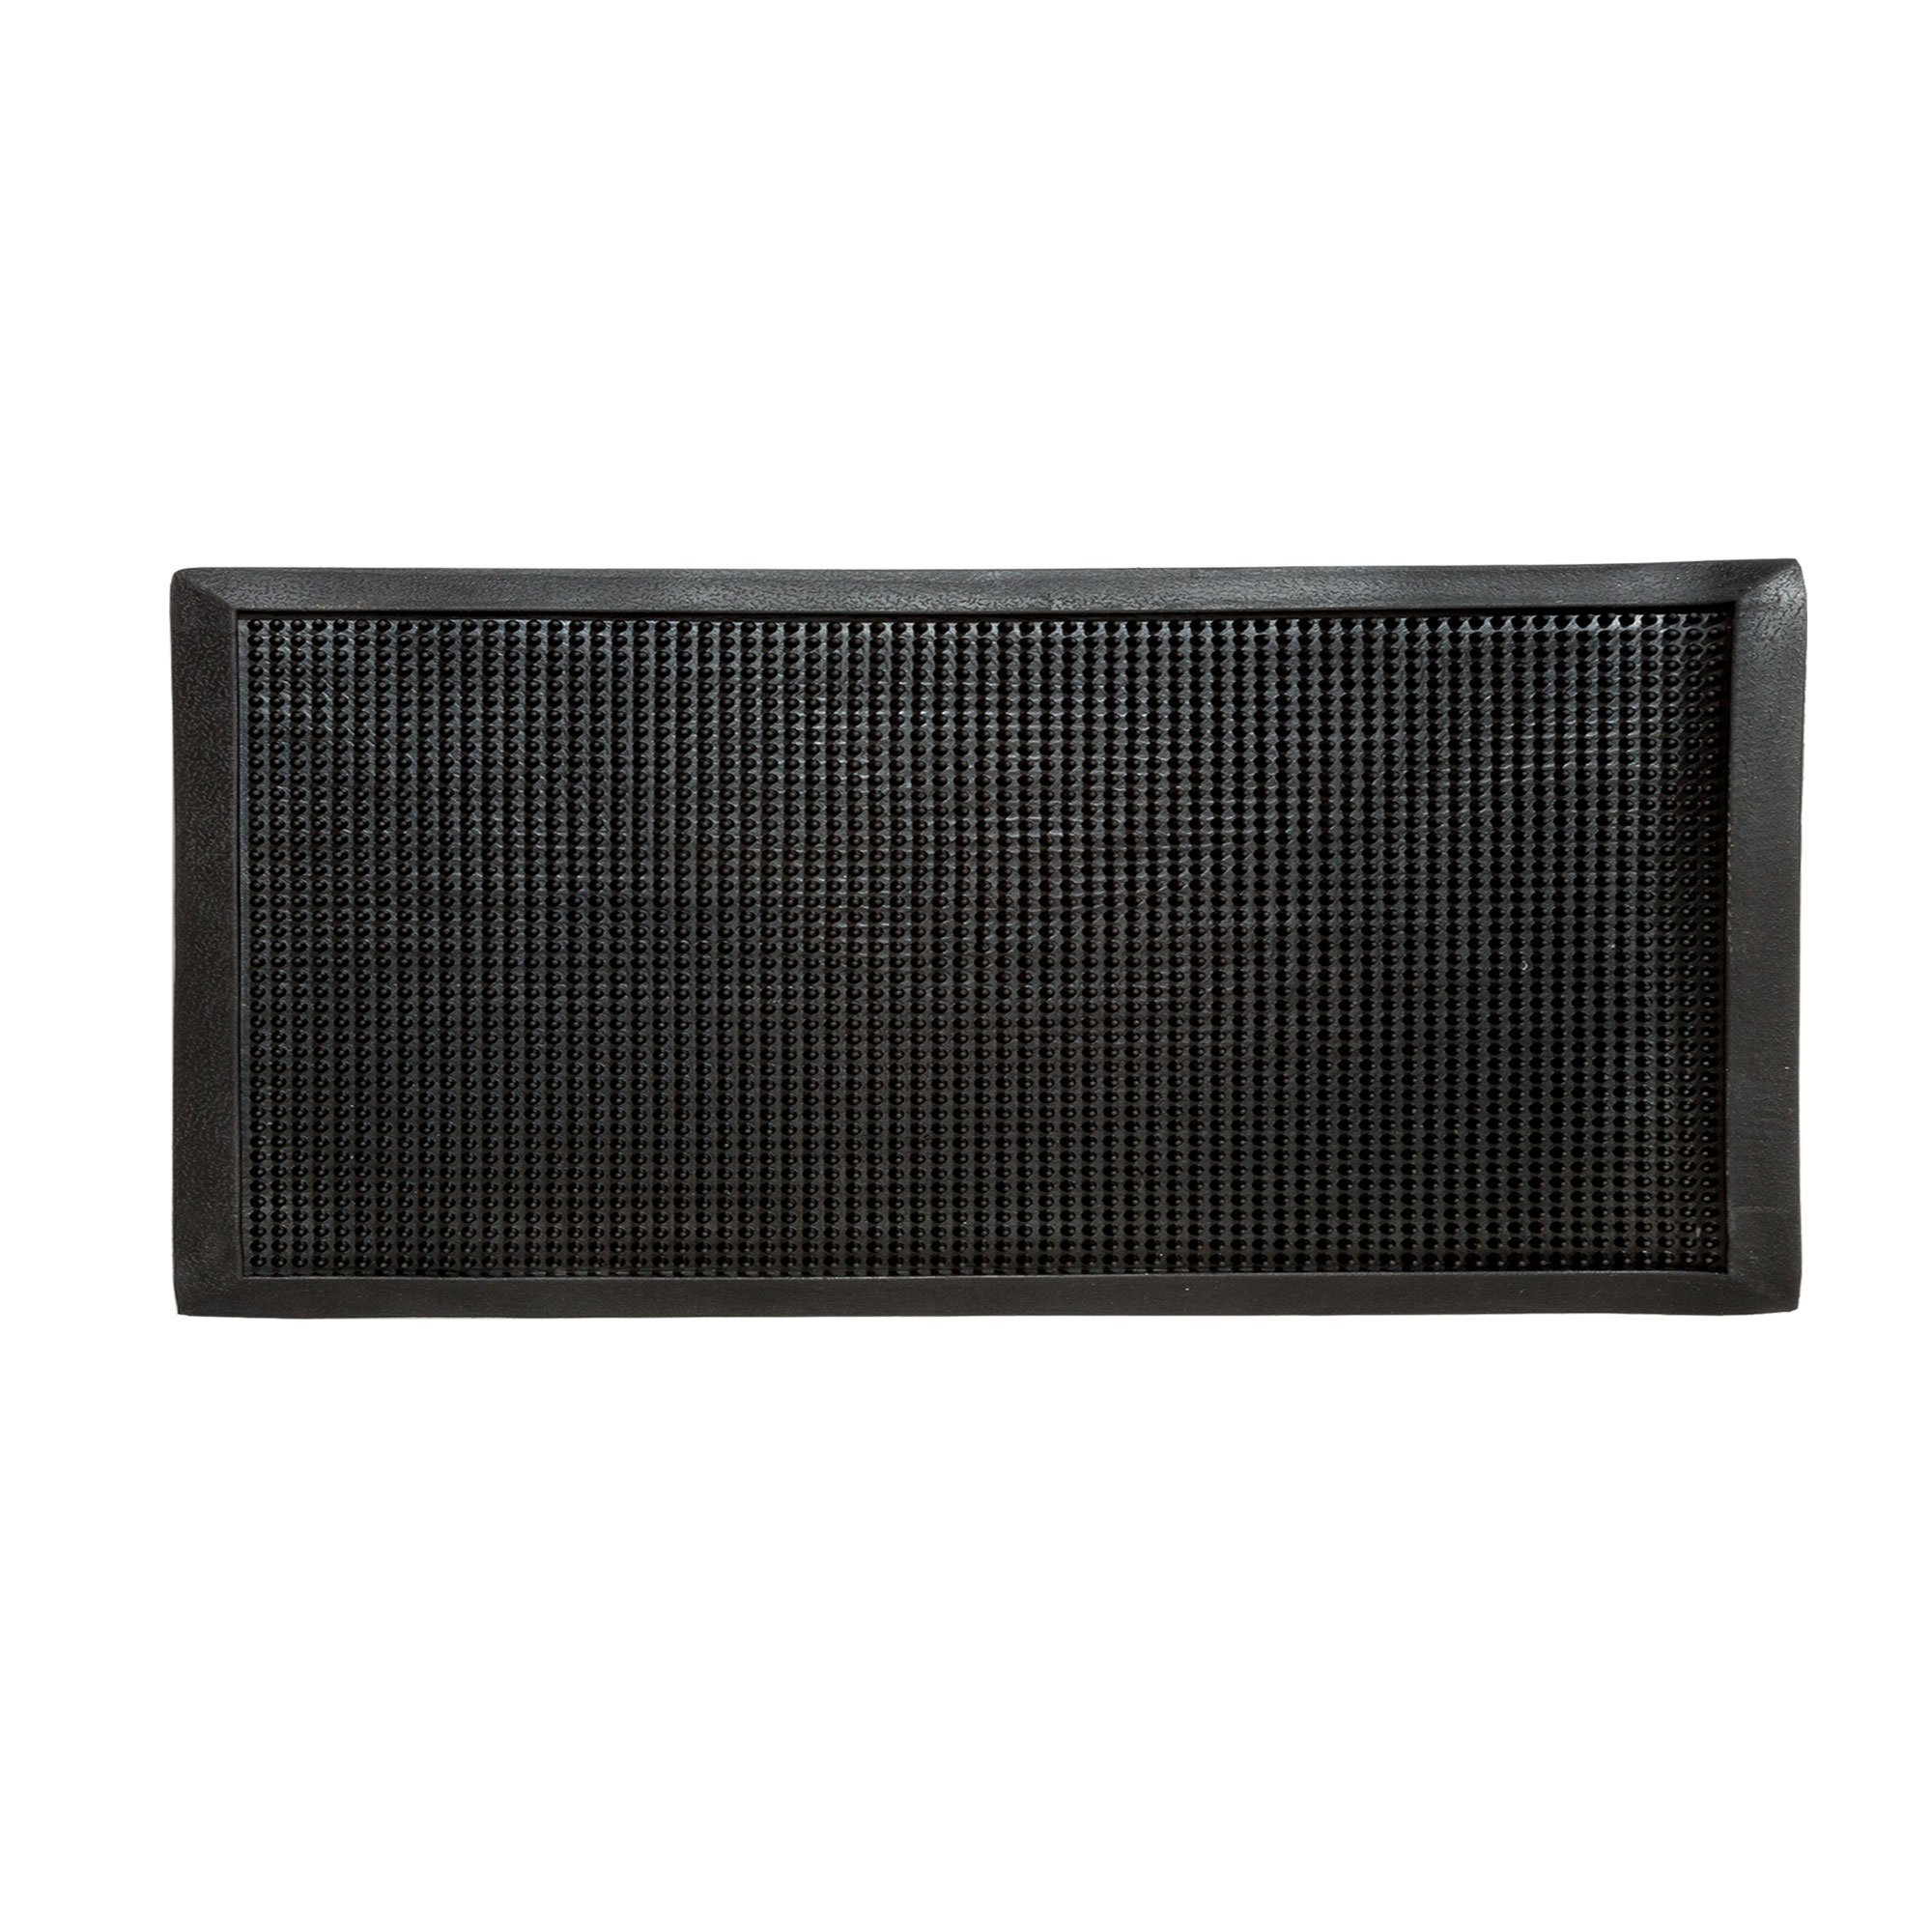 Iron Forge Tools Heavy Duty Fingertip Scraper Entrance Mat - 36 Inch by 72 Inch - Rubber Outdoor Sanitizing Floor Rug